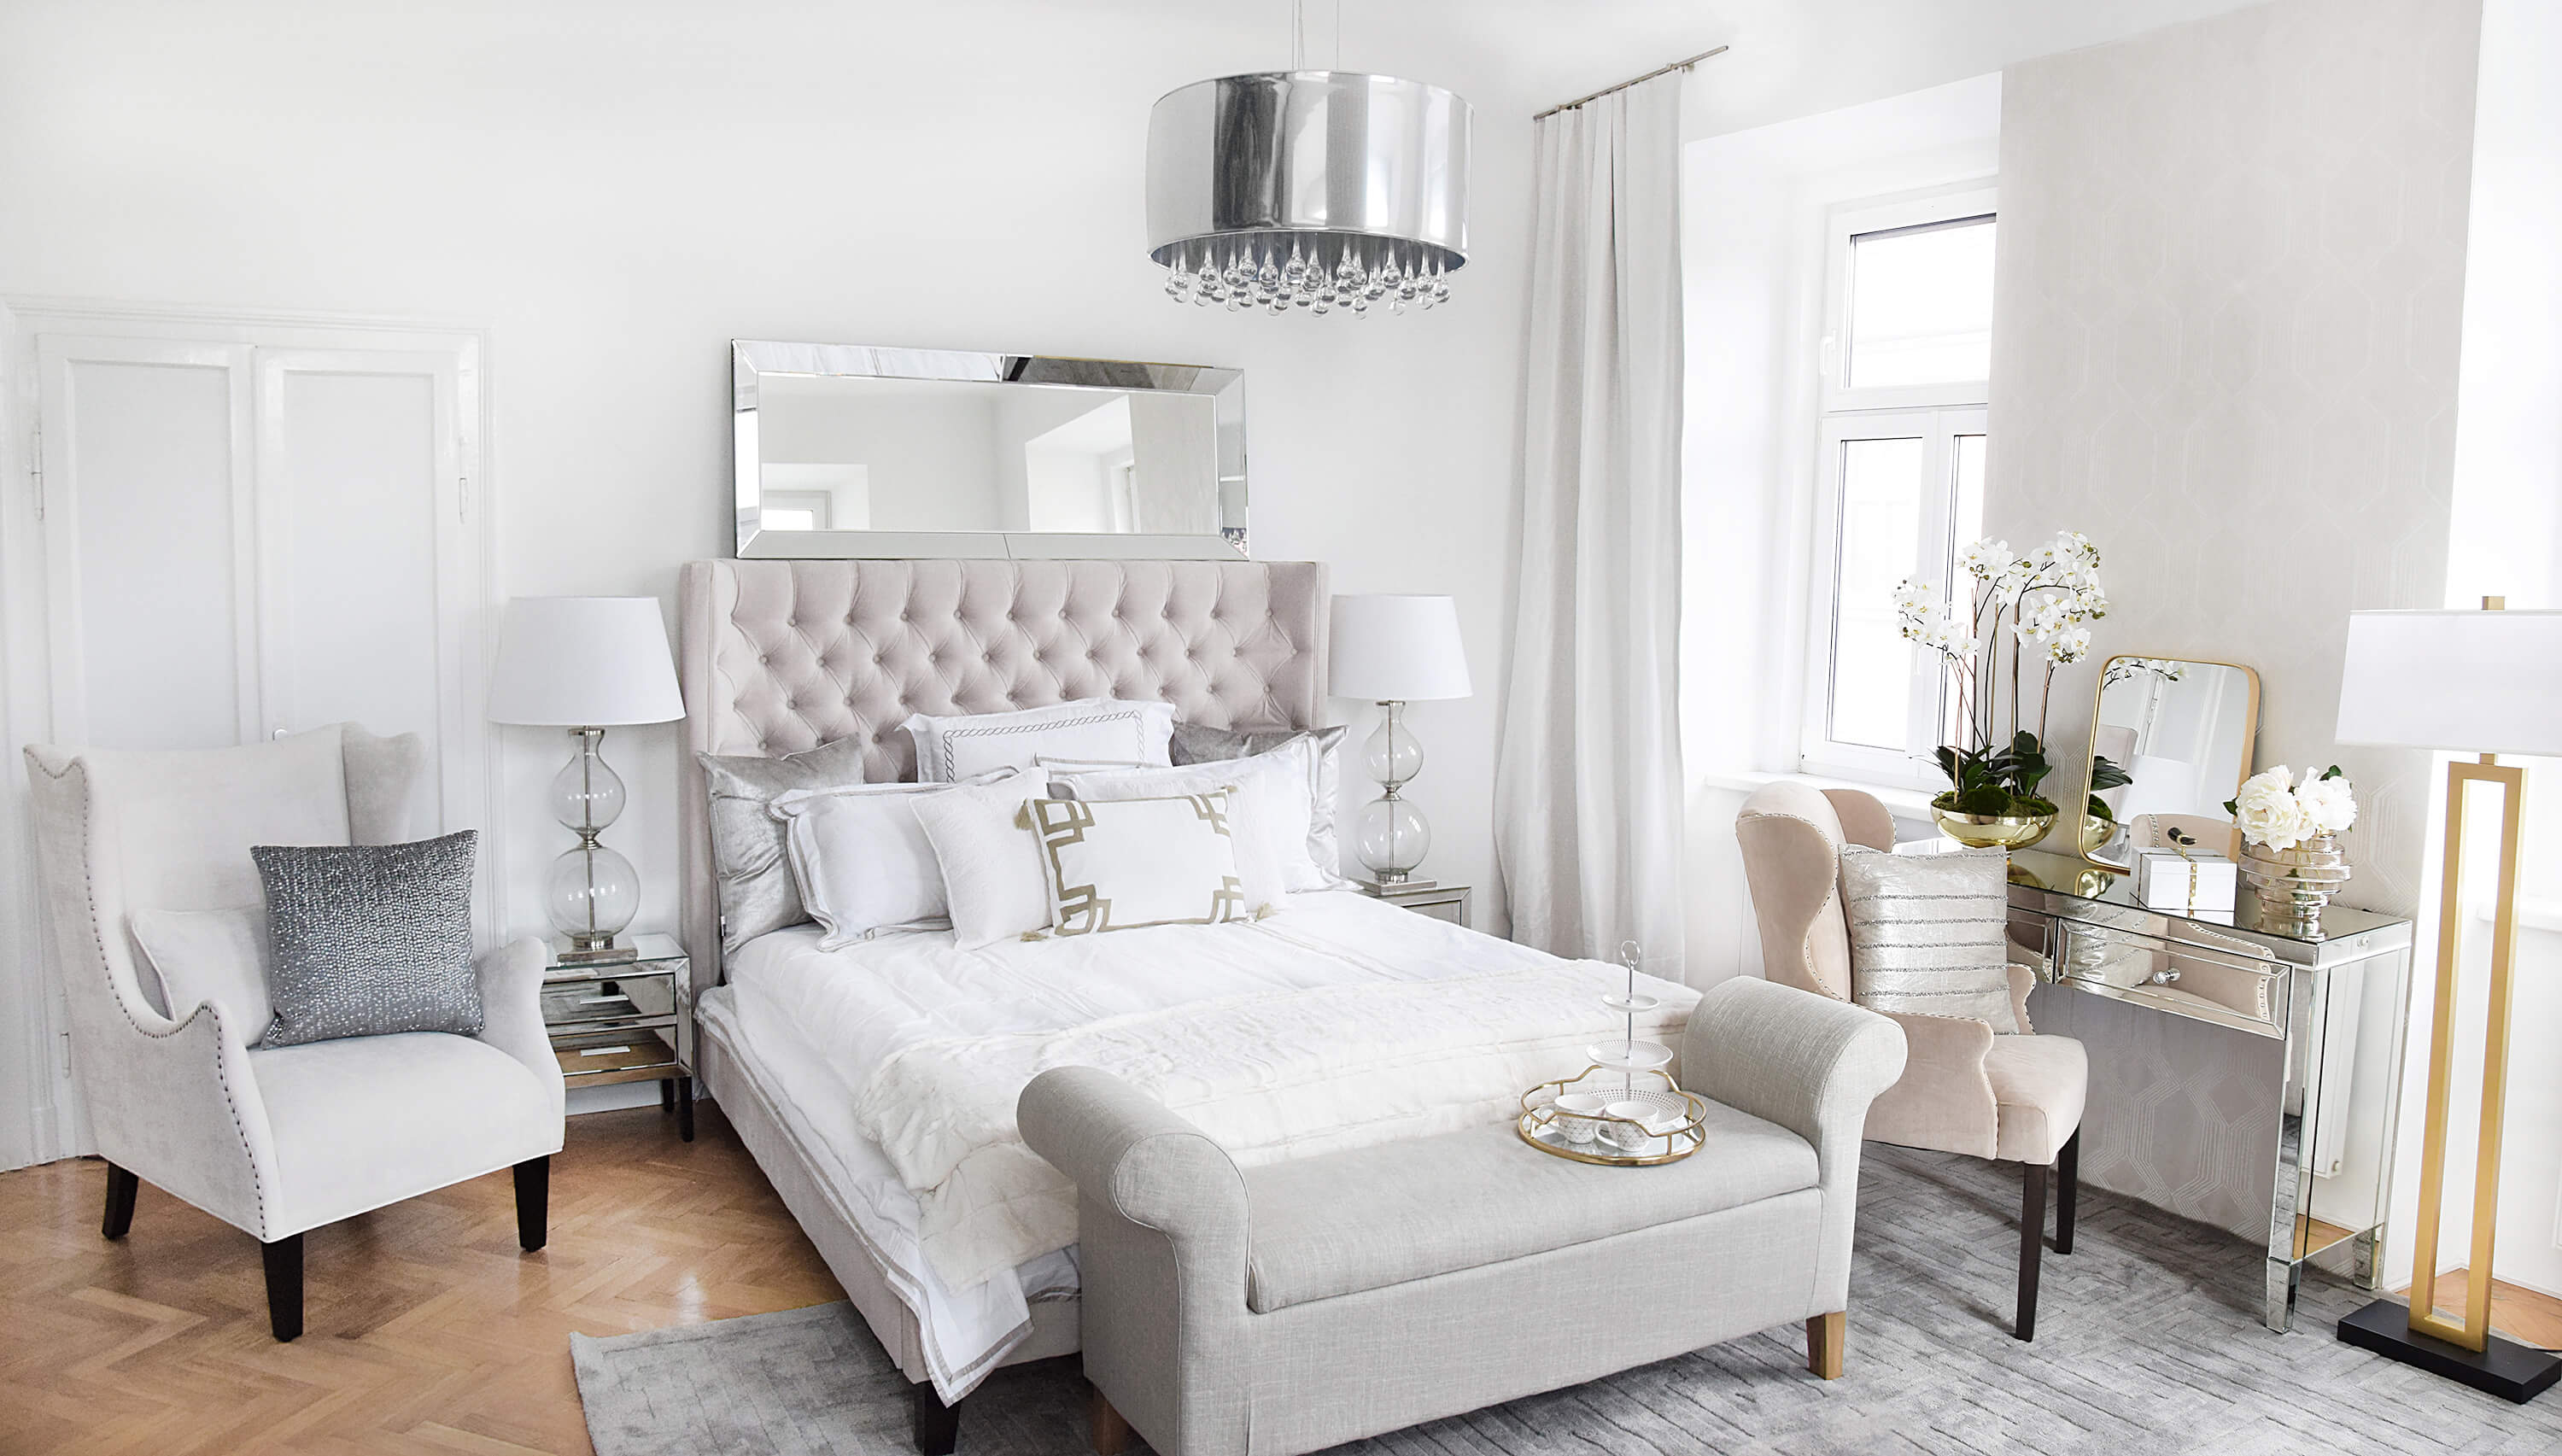 Petrol Bettwäsche Luxury Pearl White Bedroom - Looks